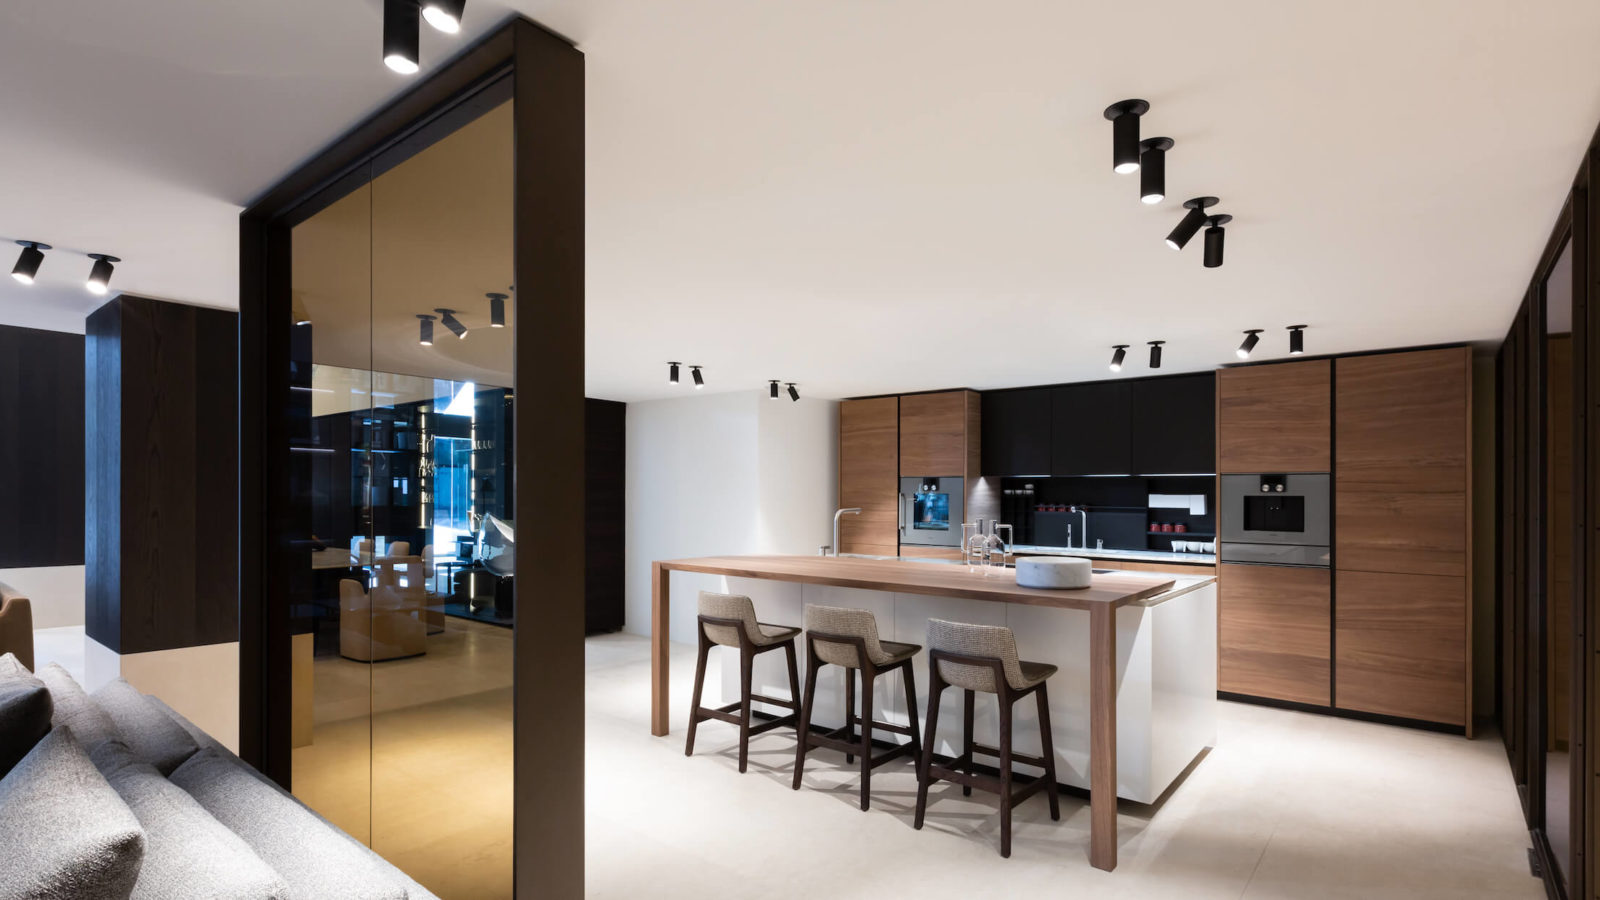 Poliform Vancouver, the kitchen in the Poliform Home